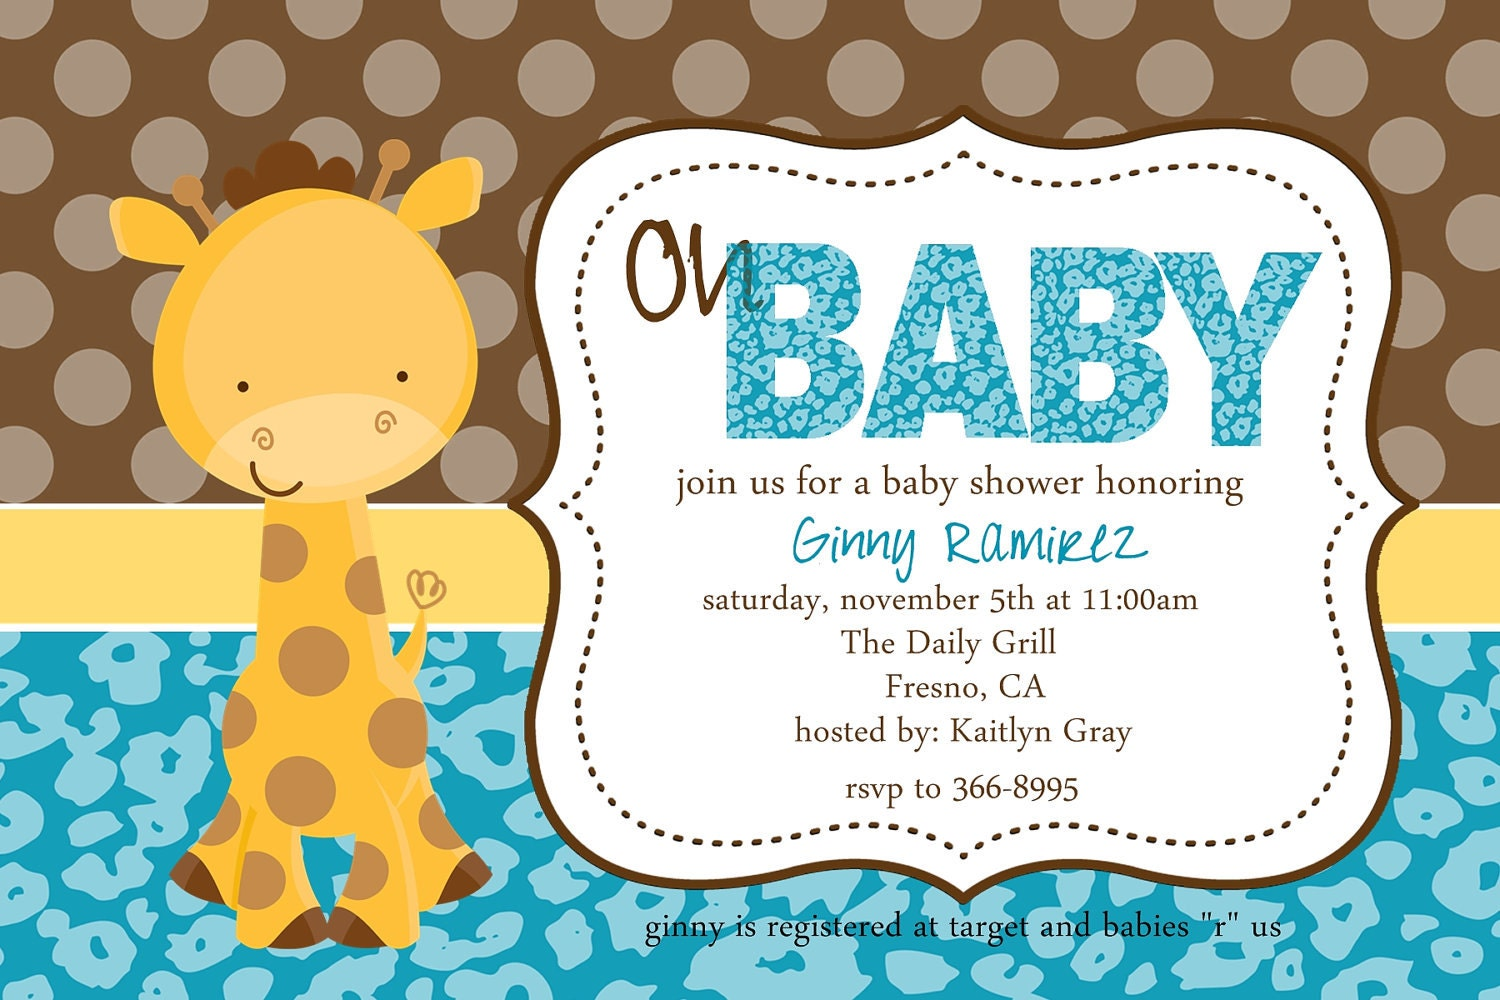 Baby Giraffe Baby Shower Invitation by beenesprout on Etsy